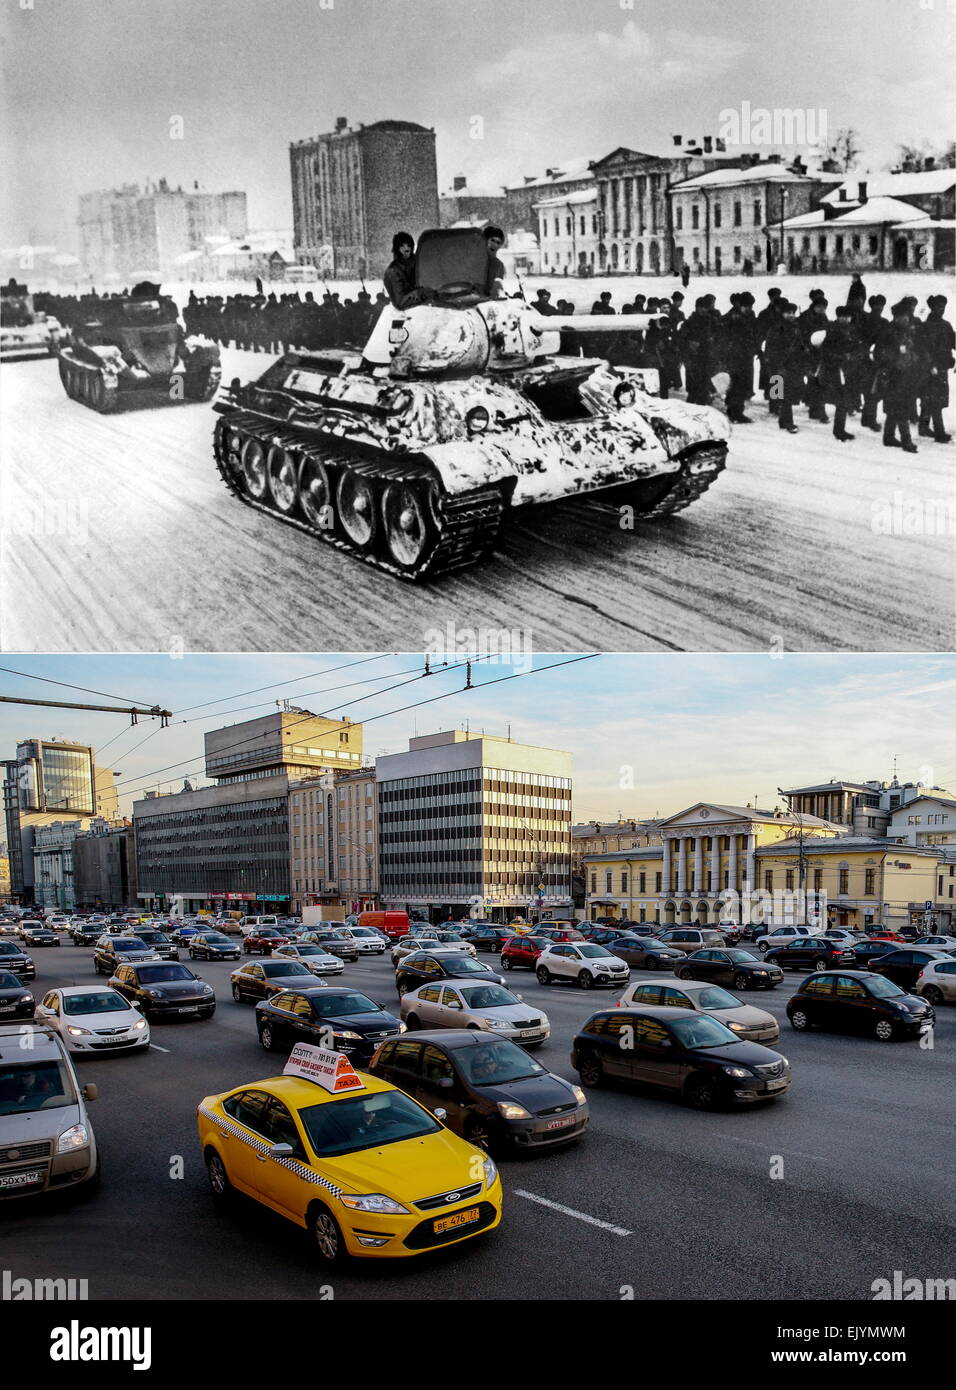 Moscow, USSR. Tanks and soldiers move along the Garden Ring (Sadovoye Koltso) as they head towards the battlefront, - Stock Image